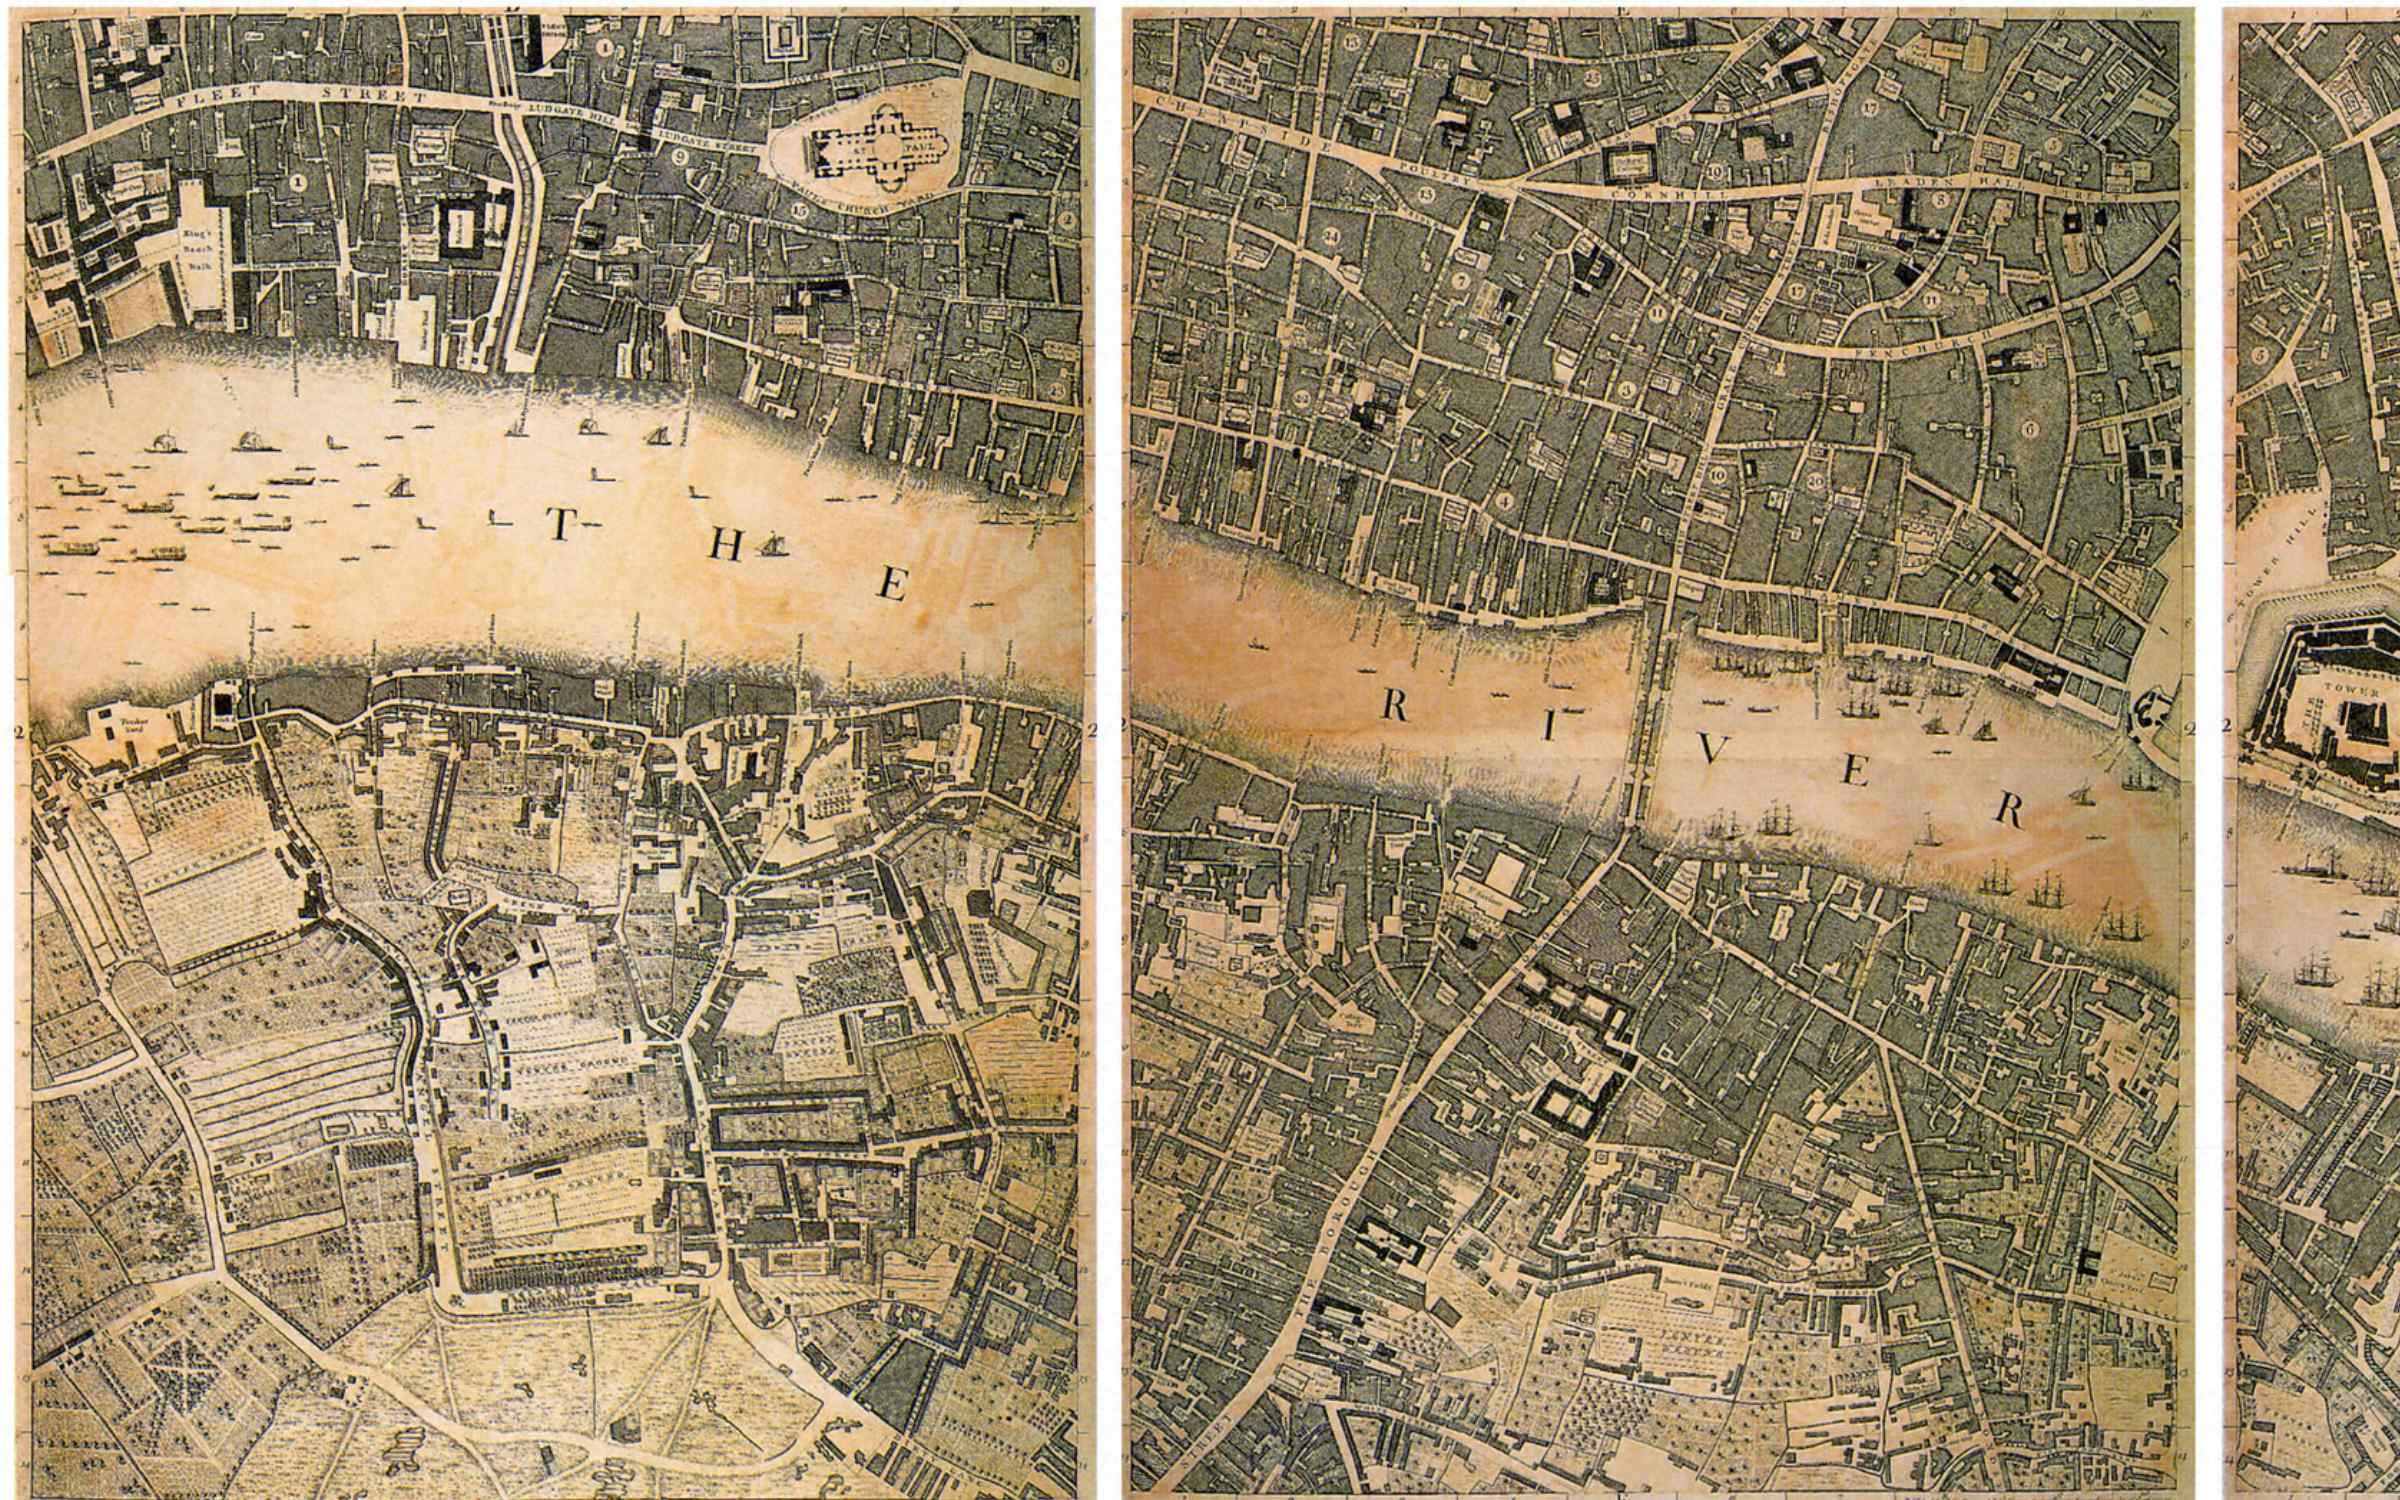 A 1746 map of London showing the street contours. Credit: Picturenow/Universal Images Group via Getty Images.